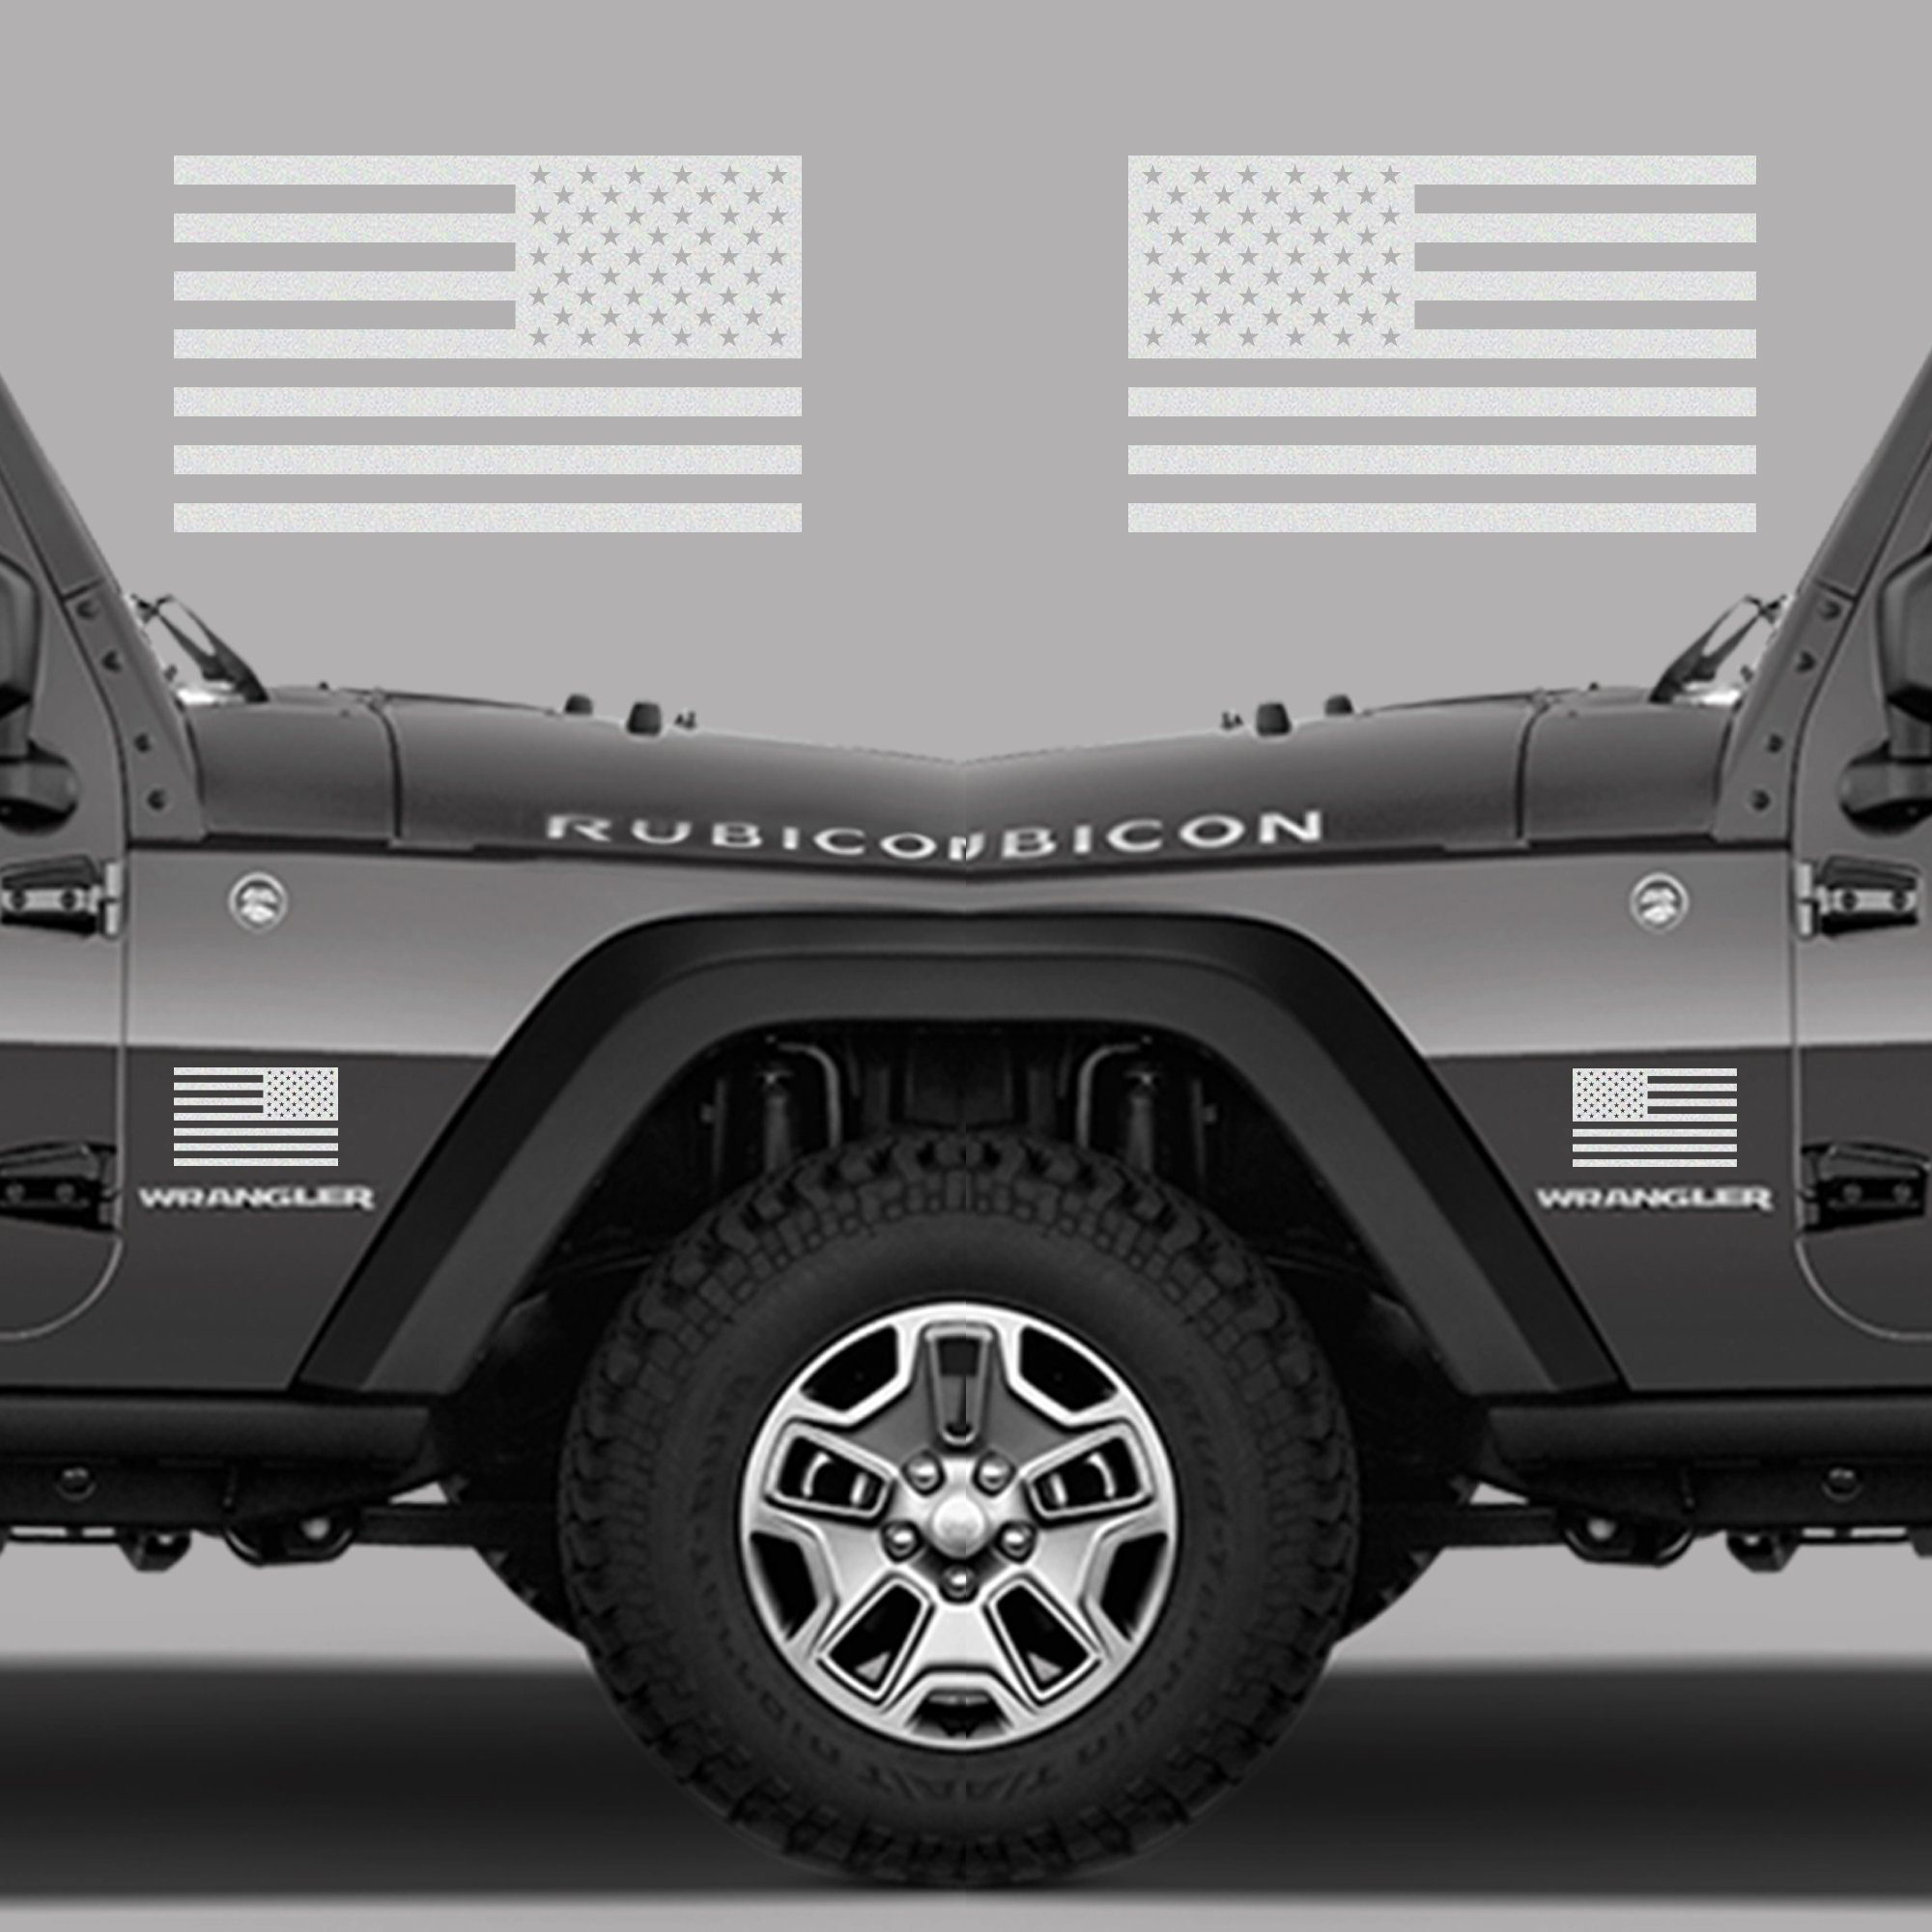 Classic biker gear subdued american flags tactical military flag usa decal jeep 5x3